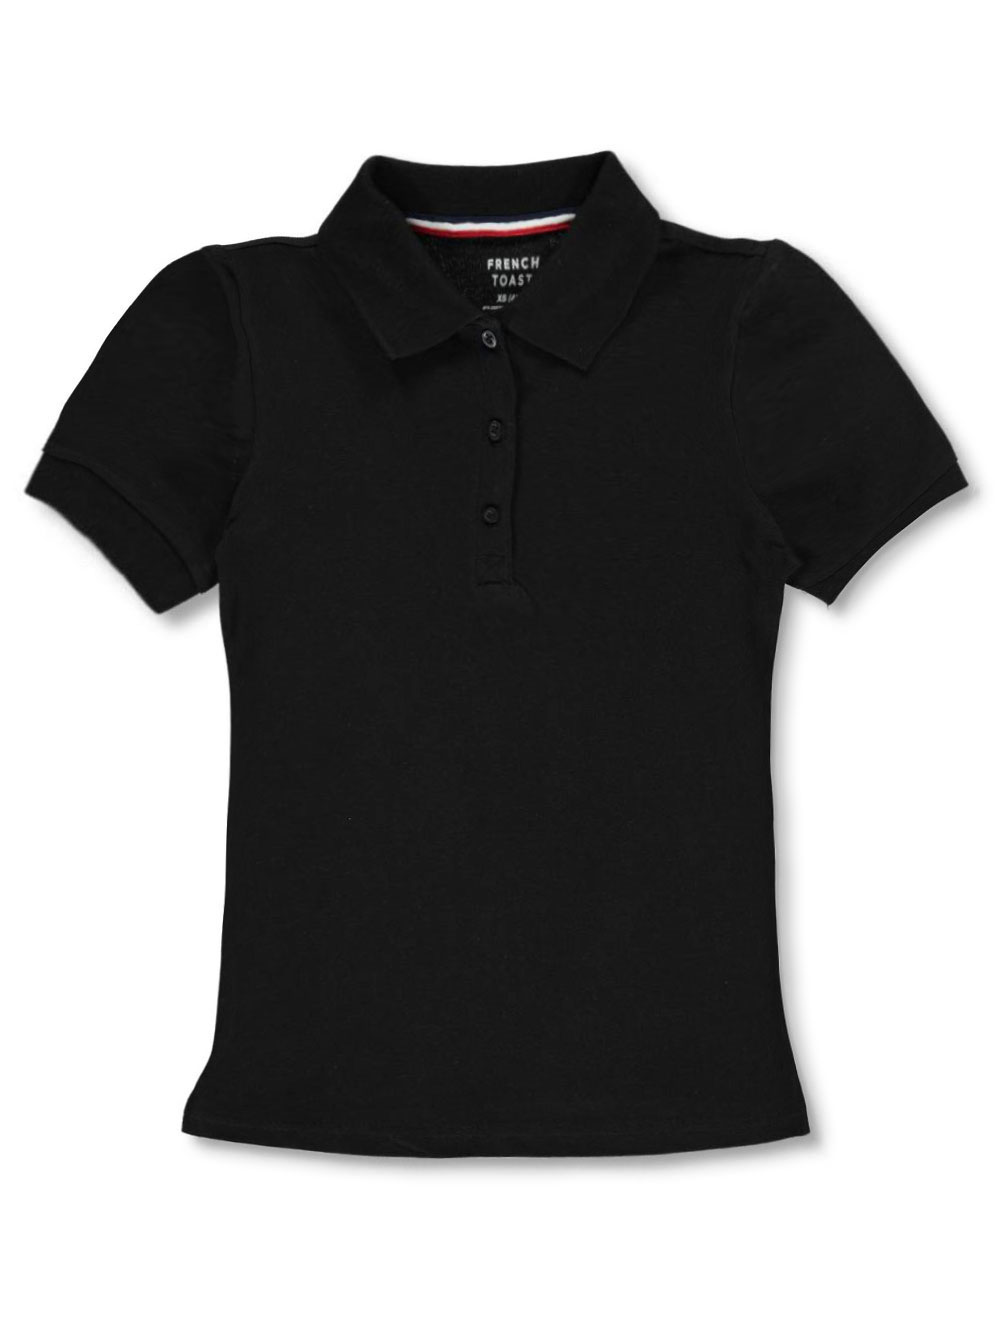 Size 6-6x Knit Polos for Girls